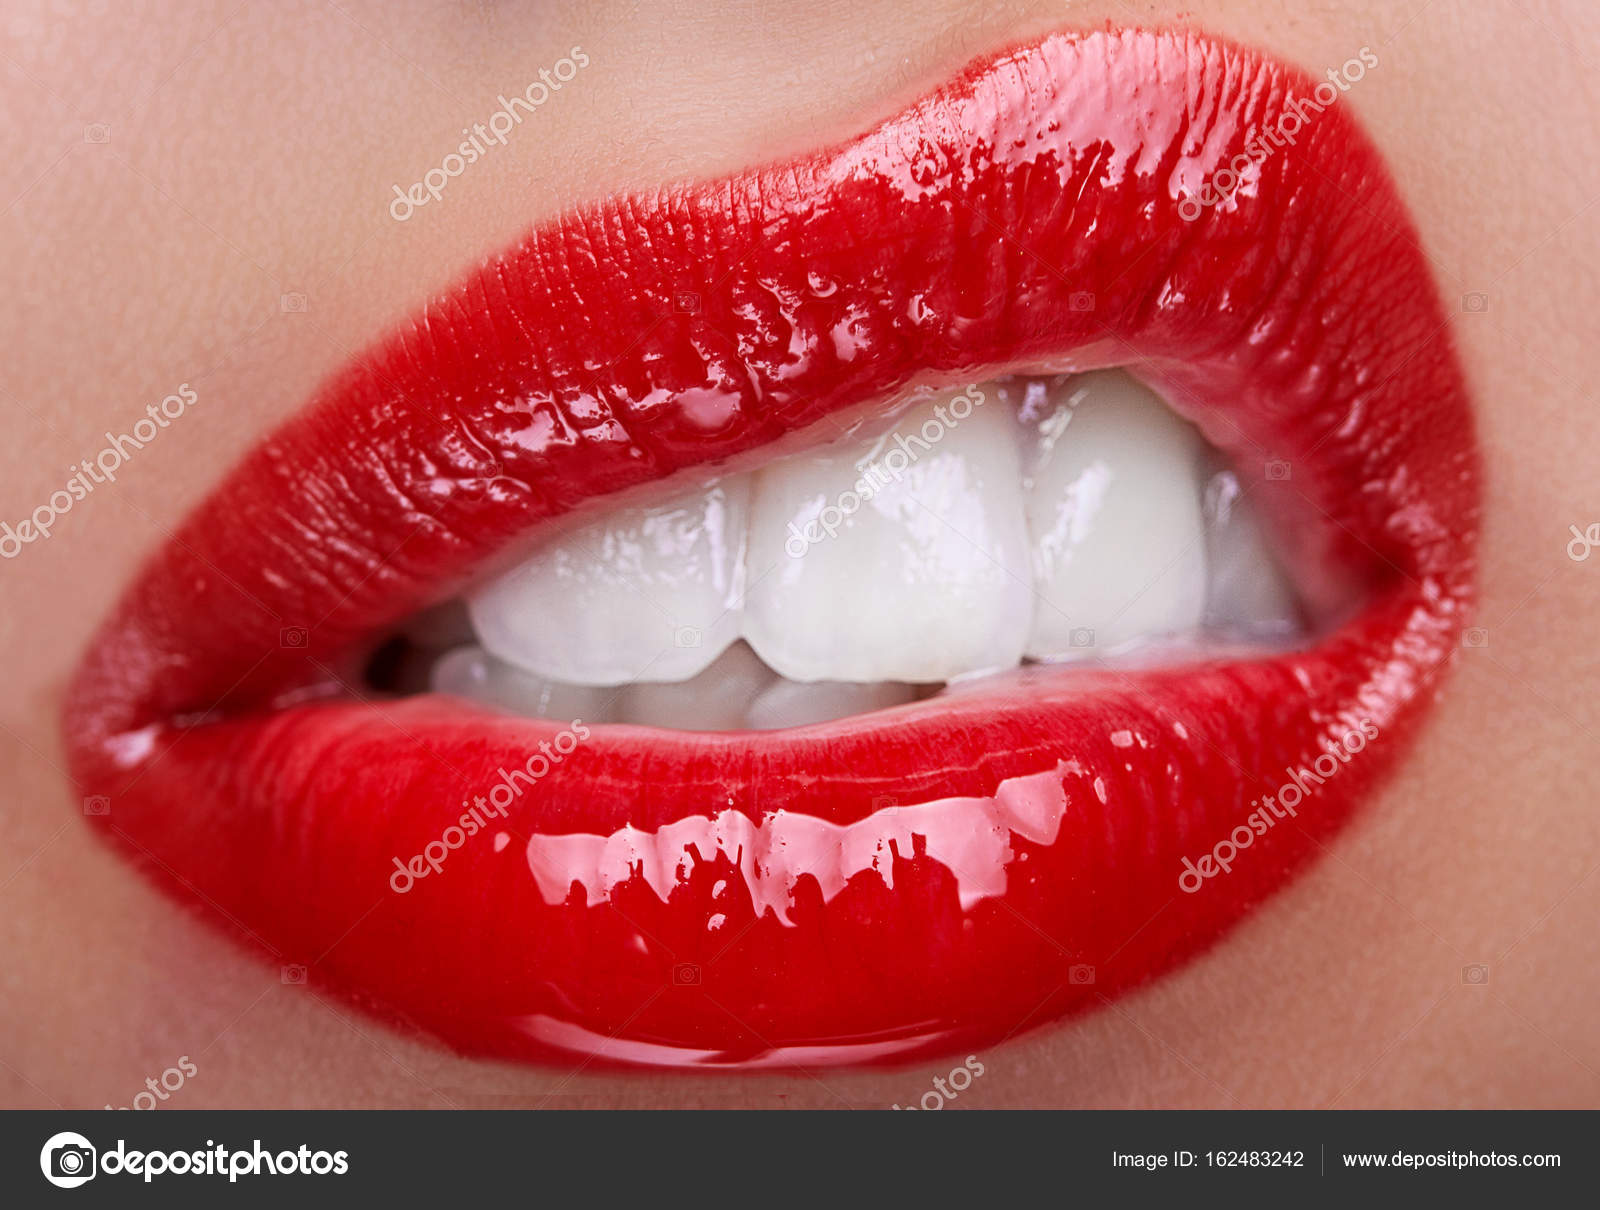 Closeup Of Lips With Red Glance Lipstick Passionate Macro Photography Photo Cosmetology Drugstore Or Fashion Makeup Concept Beauty Studio Shot Stock Image By C Simplesseller Gmail Com 162483242